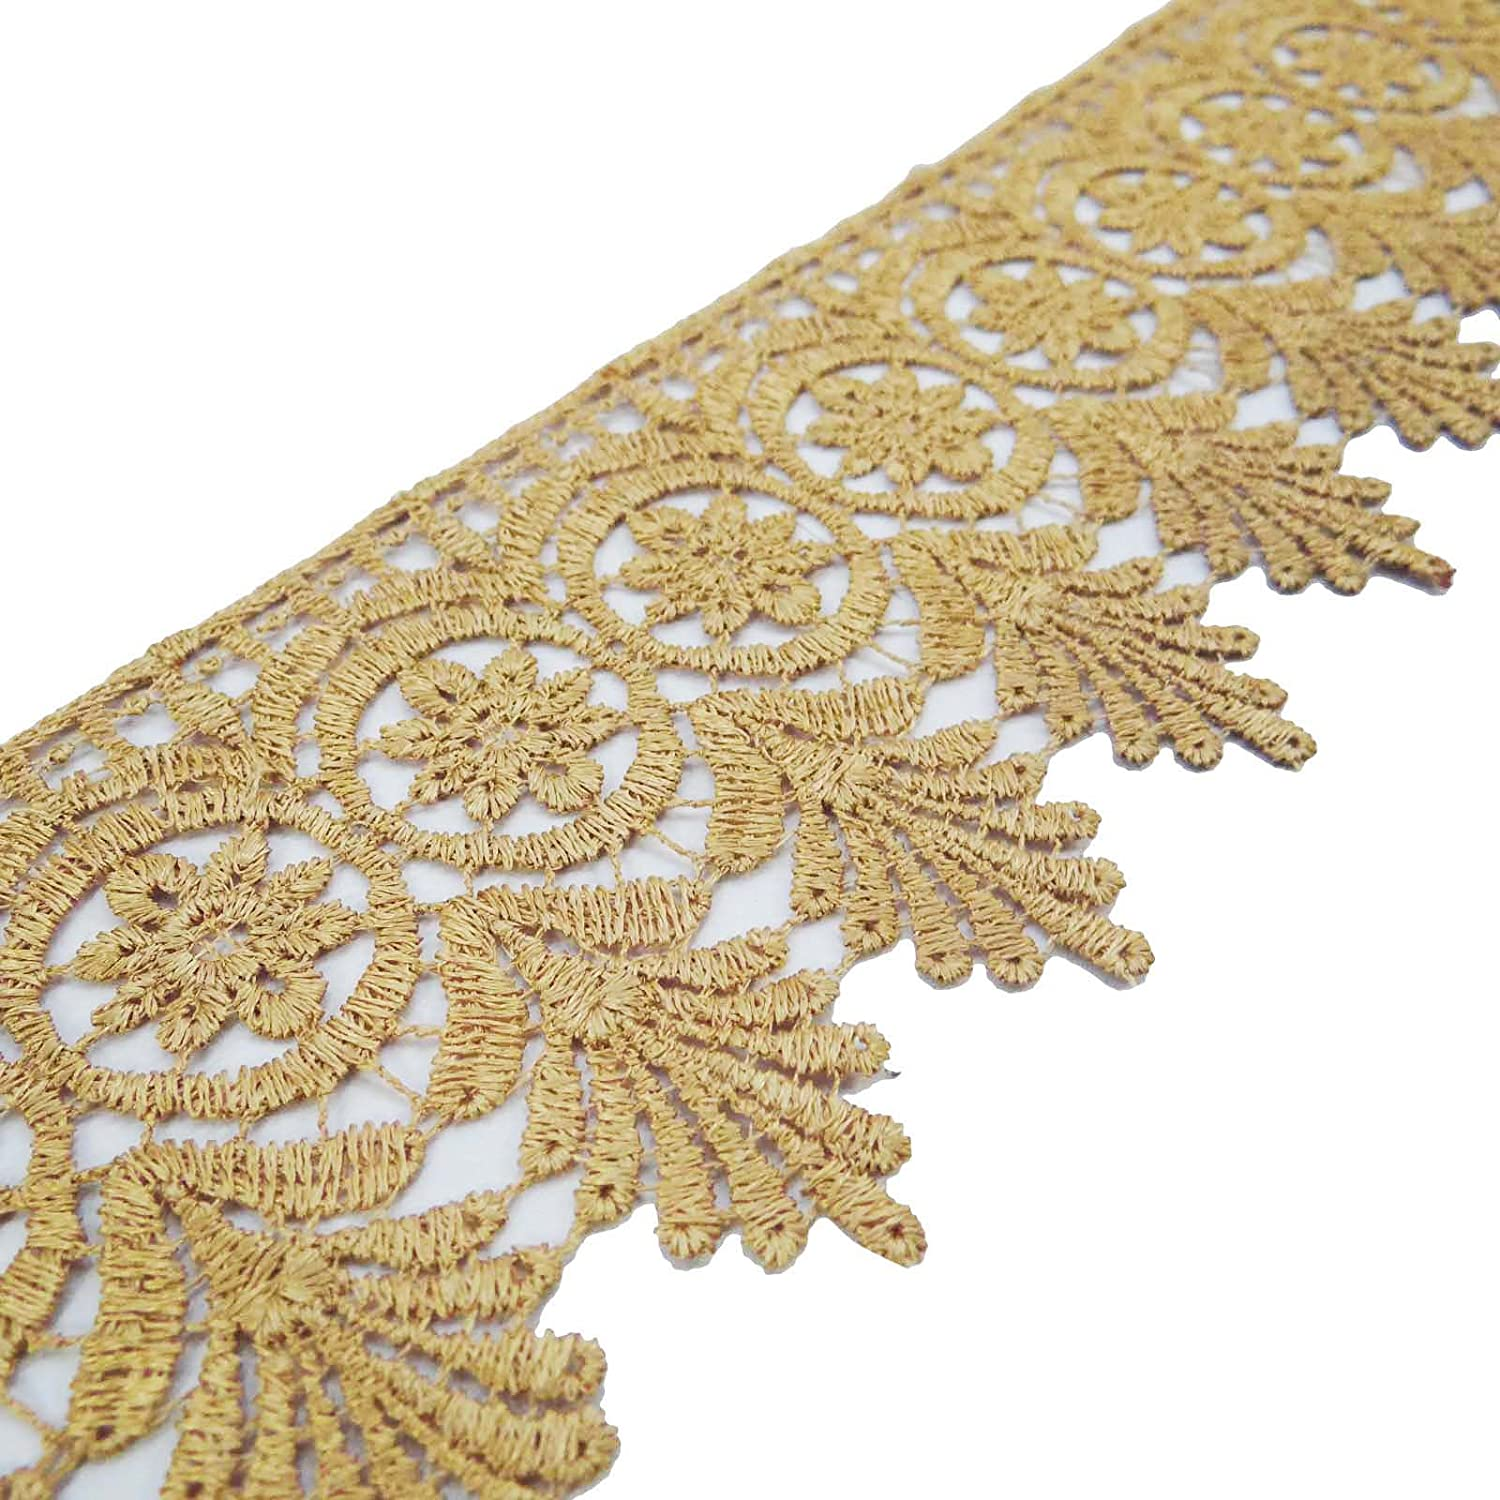 Beige Venice Lace Trim Bridal Lace 3 Inches Wide Sewing Embellishment By The Yard ibaexports